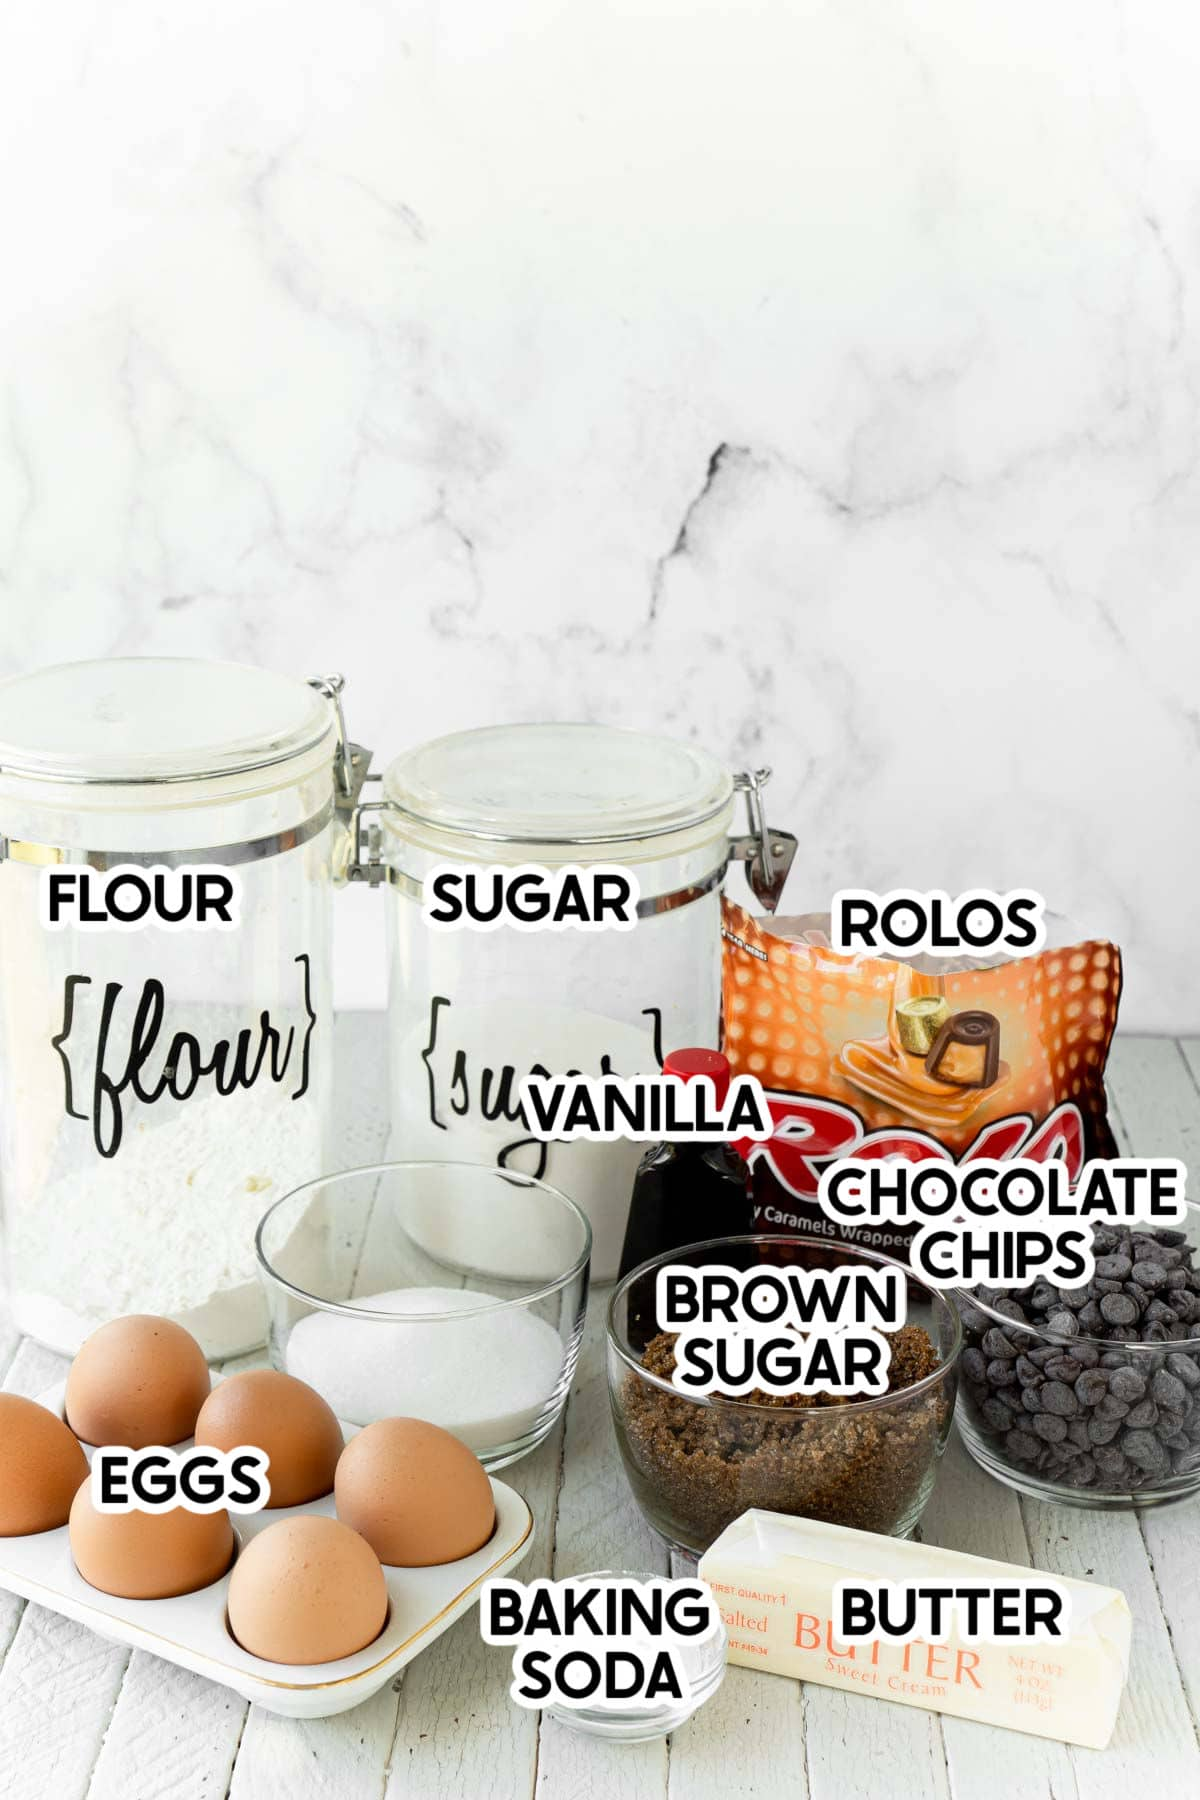 ingredients needed for rolo cookies with labels